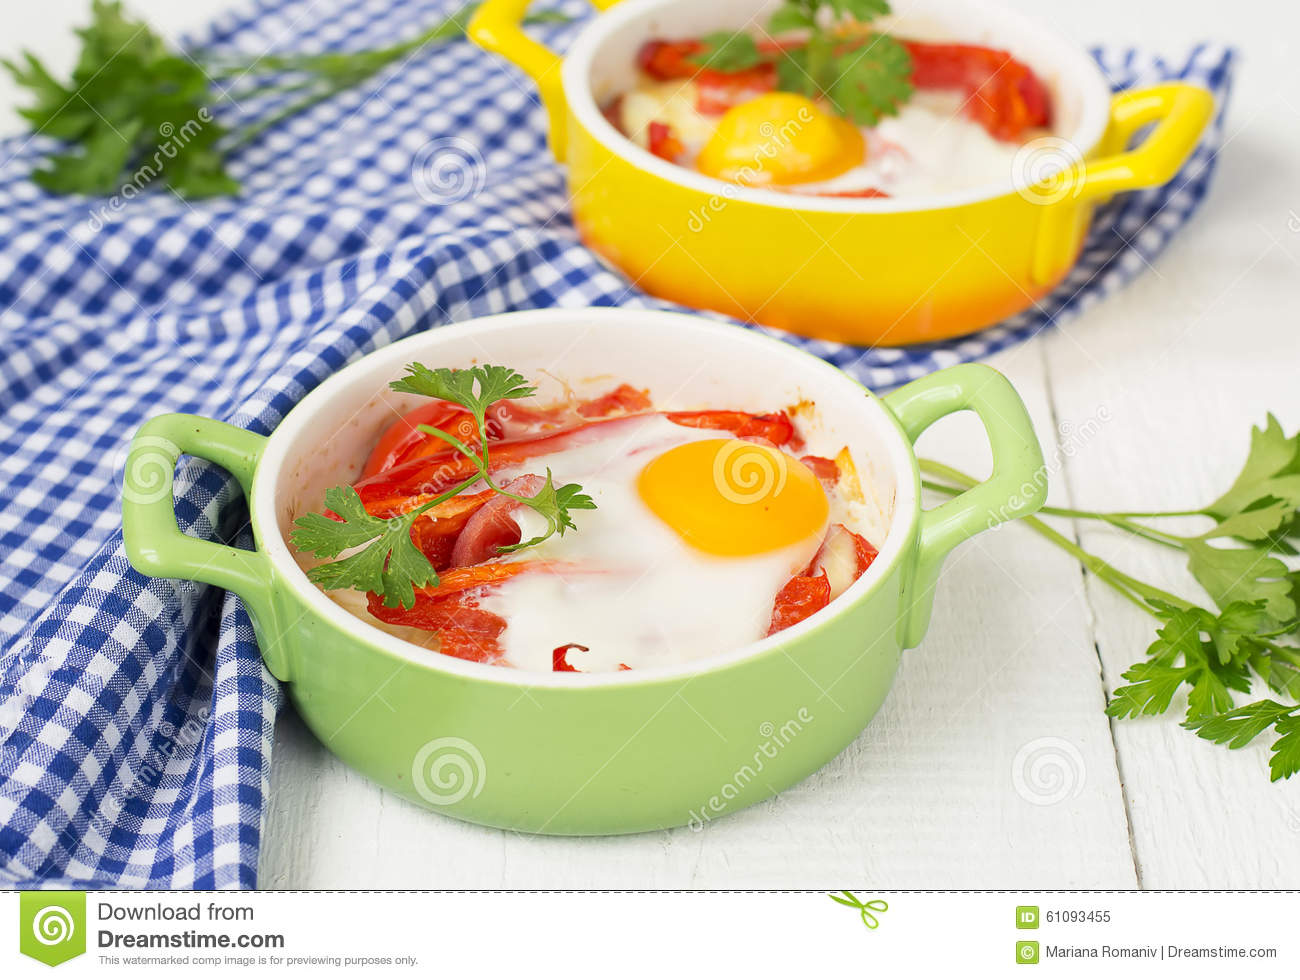 Baked Eggs With Cheese, Tomatoes And Peppers. Stock Photo - Image ...